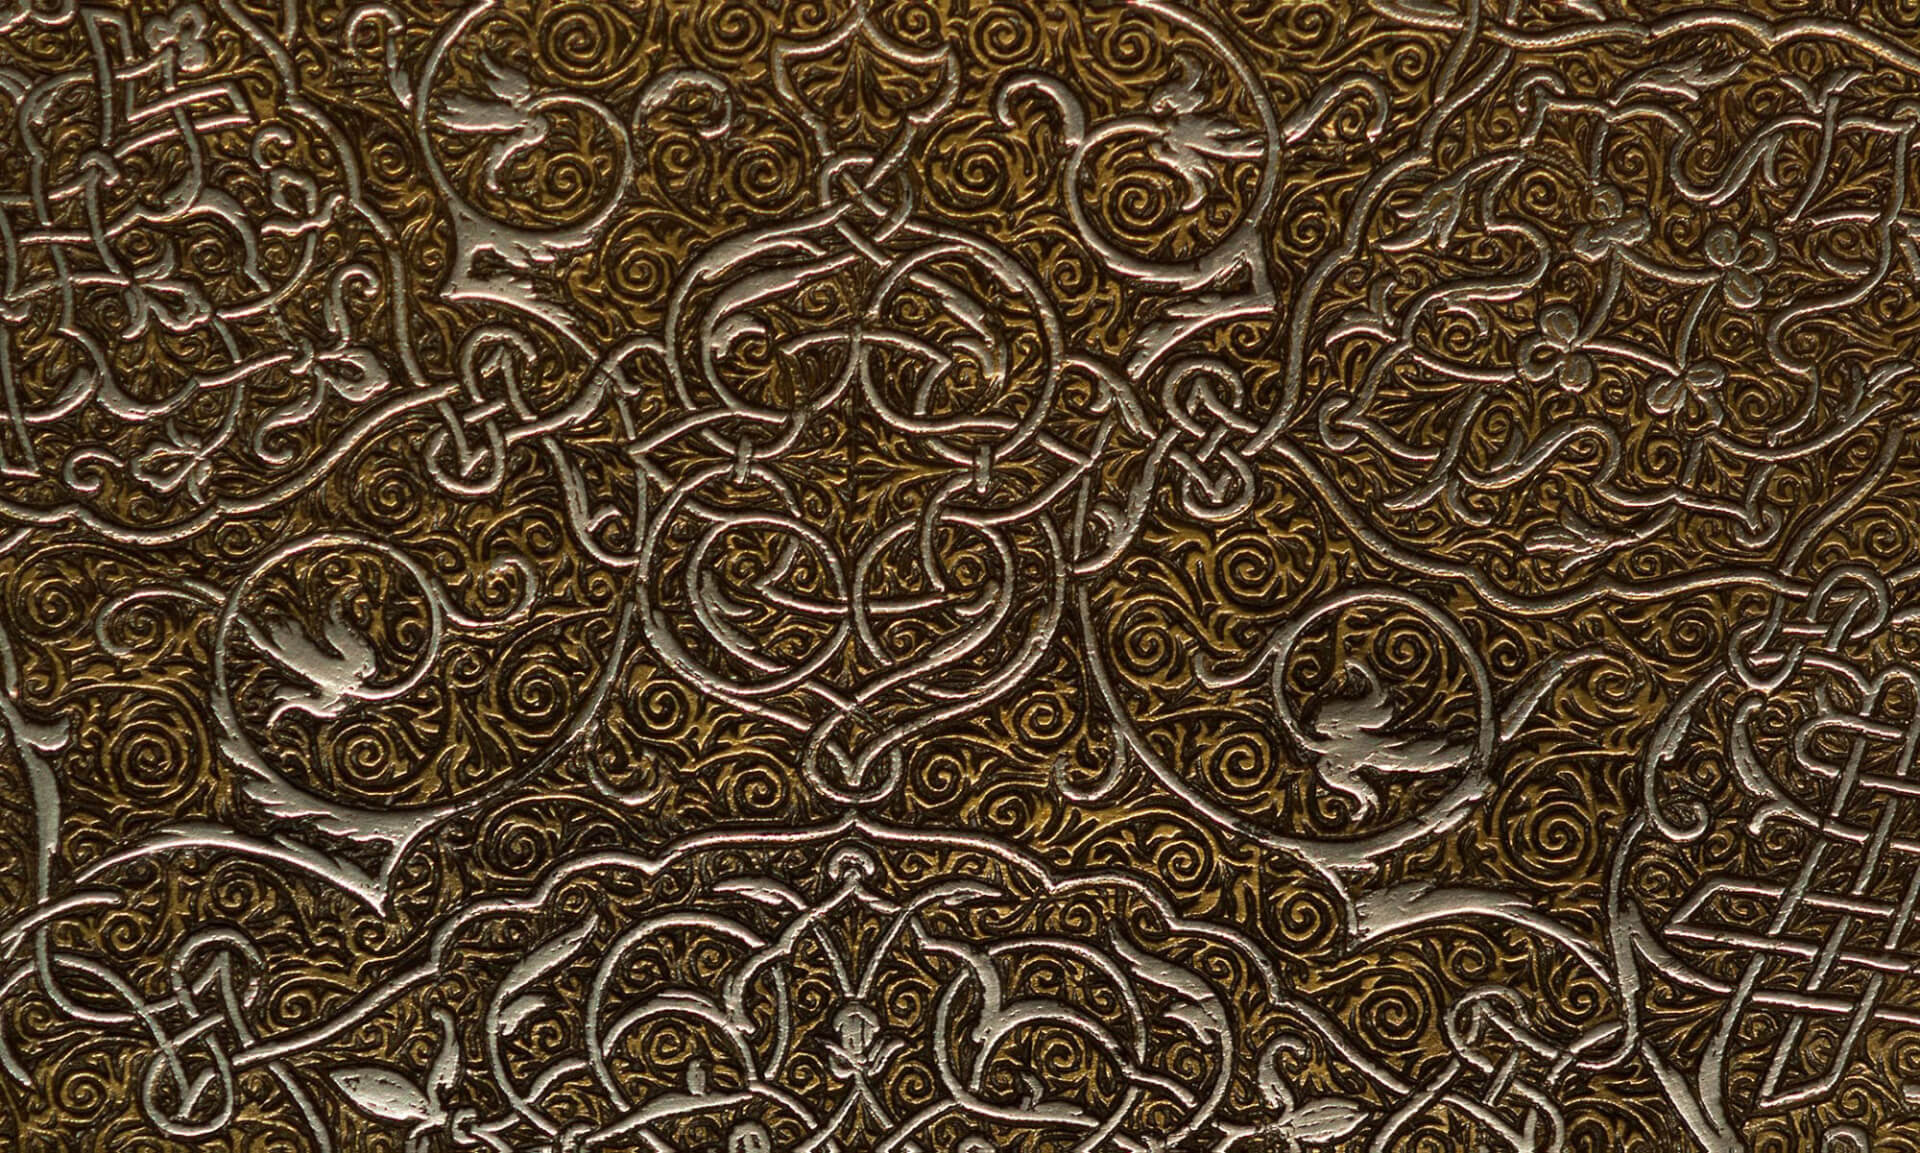 15th Century Metal Work (DE9602) Detail Doug Garrabrants